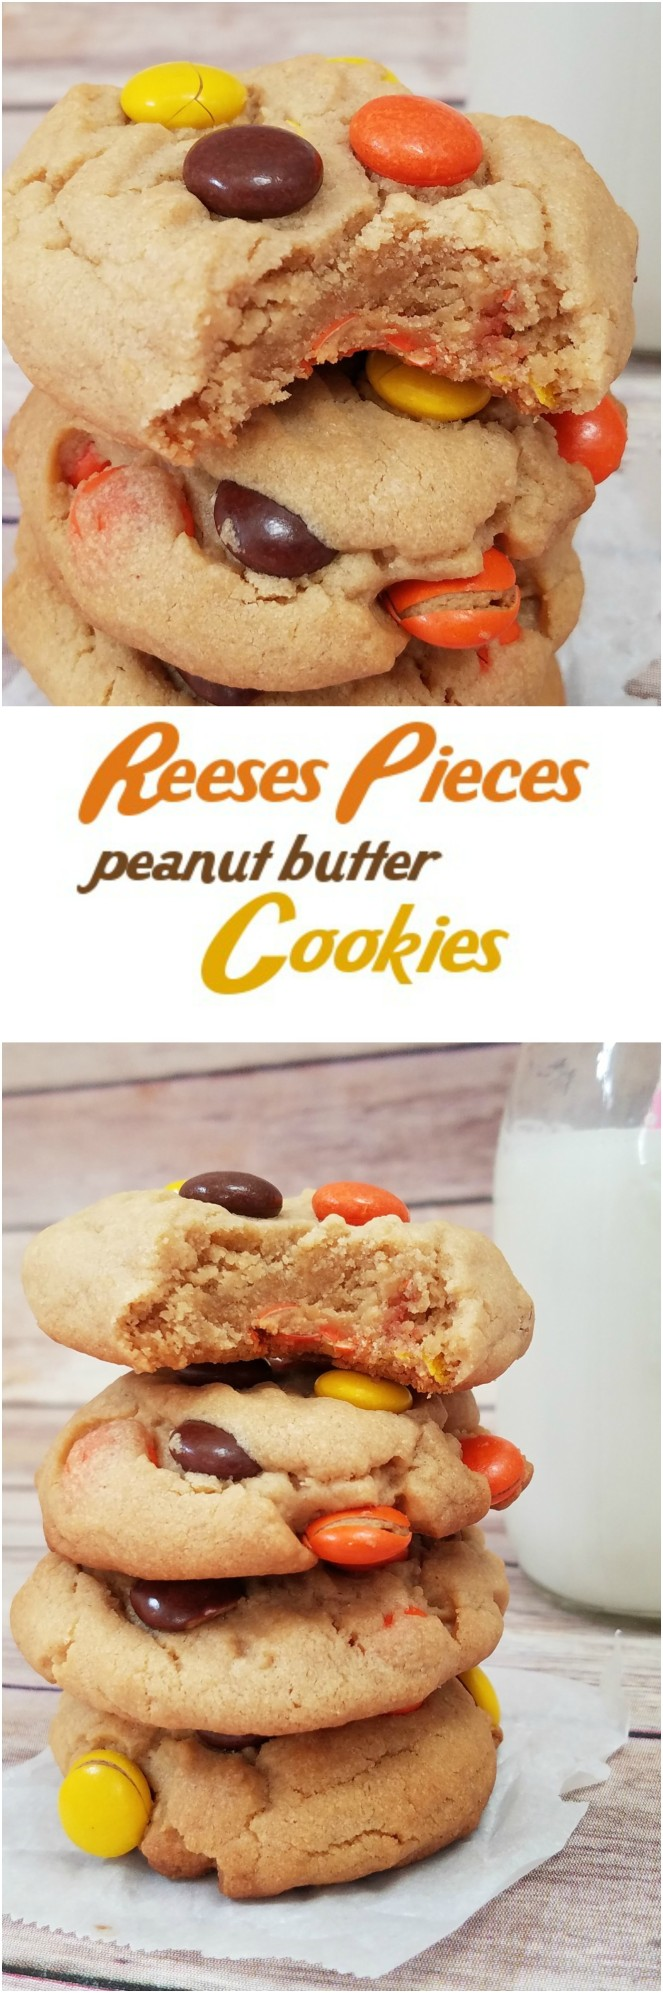 Reeses Pieces Peanut Butter Cookies by Rumbly in my Tumbly